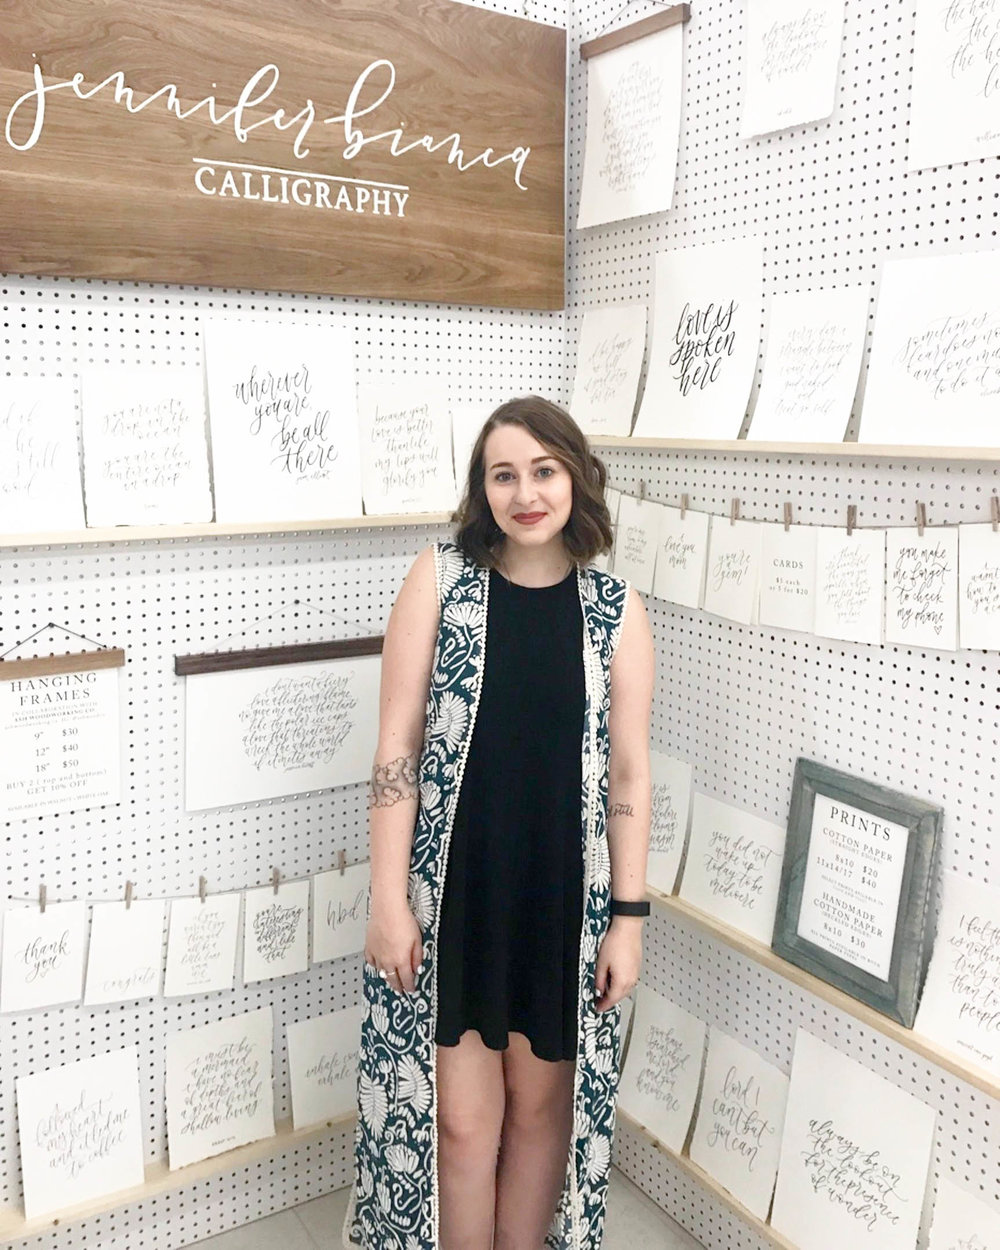 Jennifer Bianca Calligraphy at Third + Bird Spring Market 2017